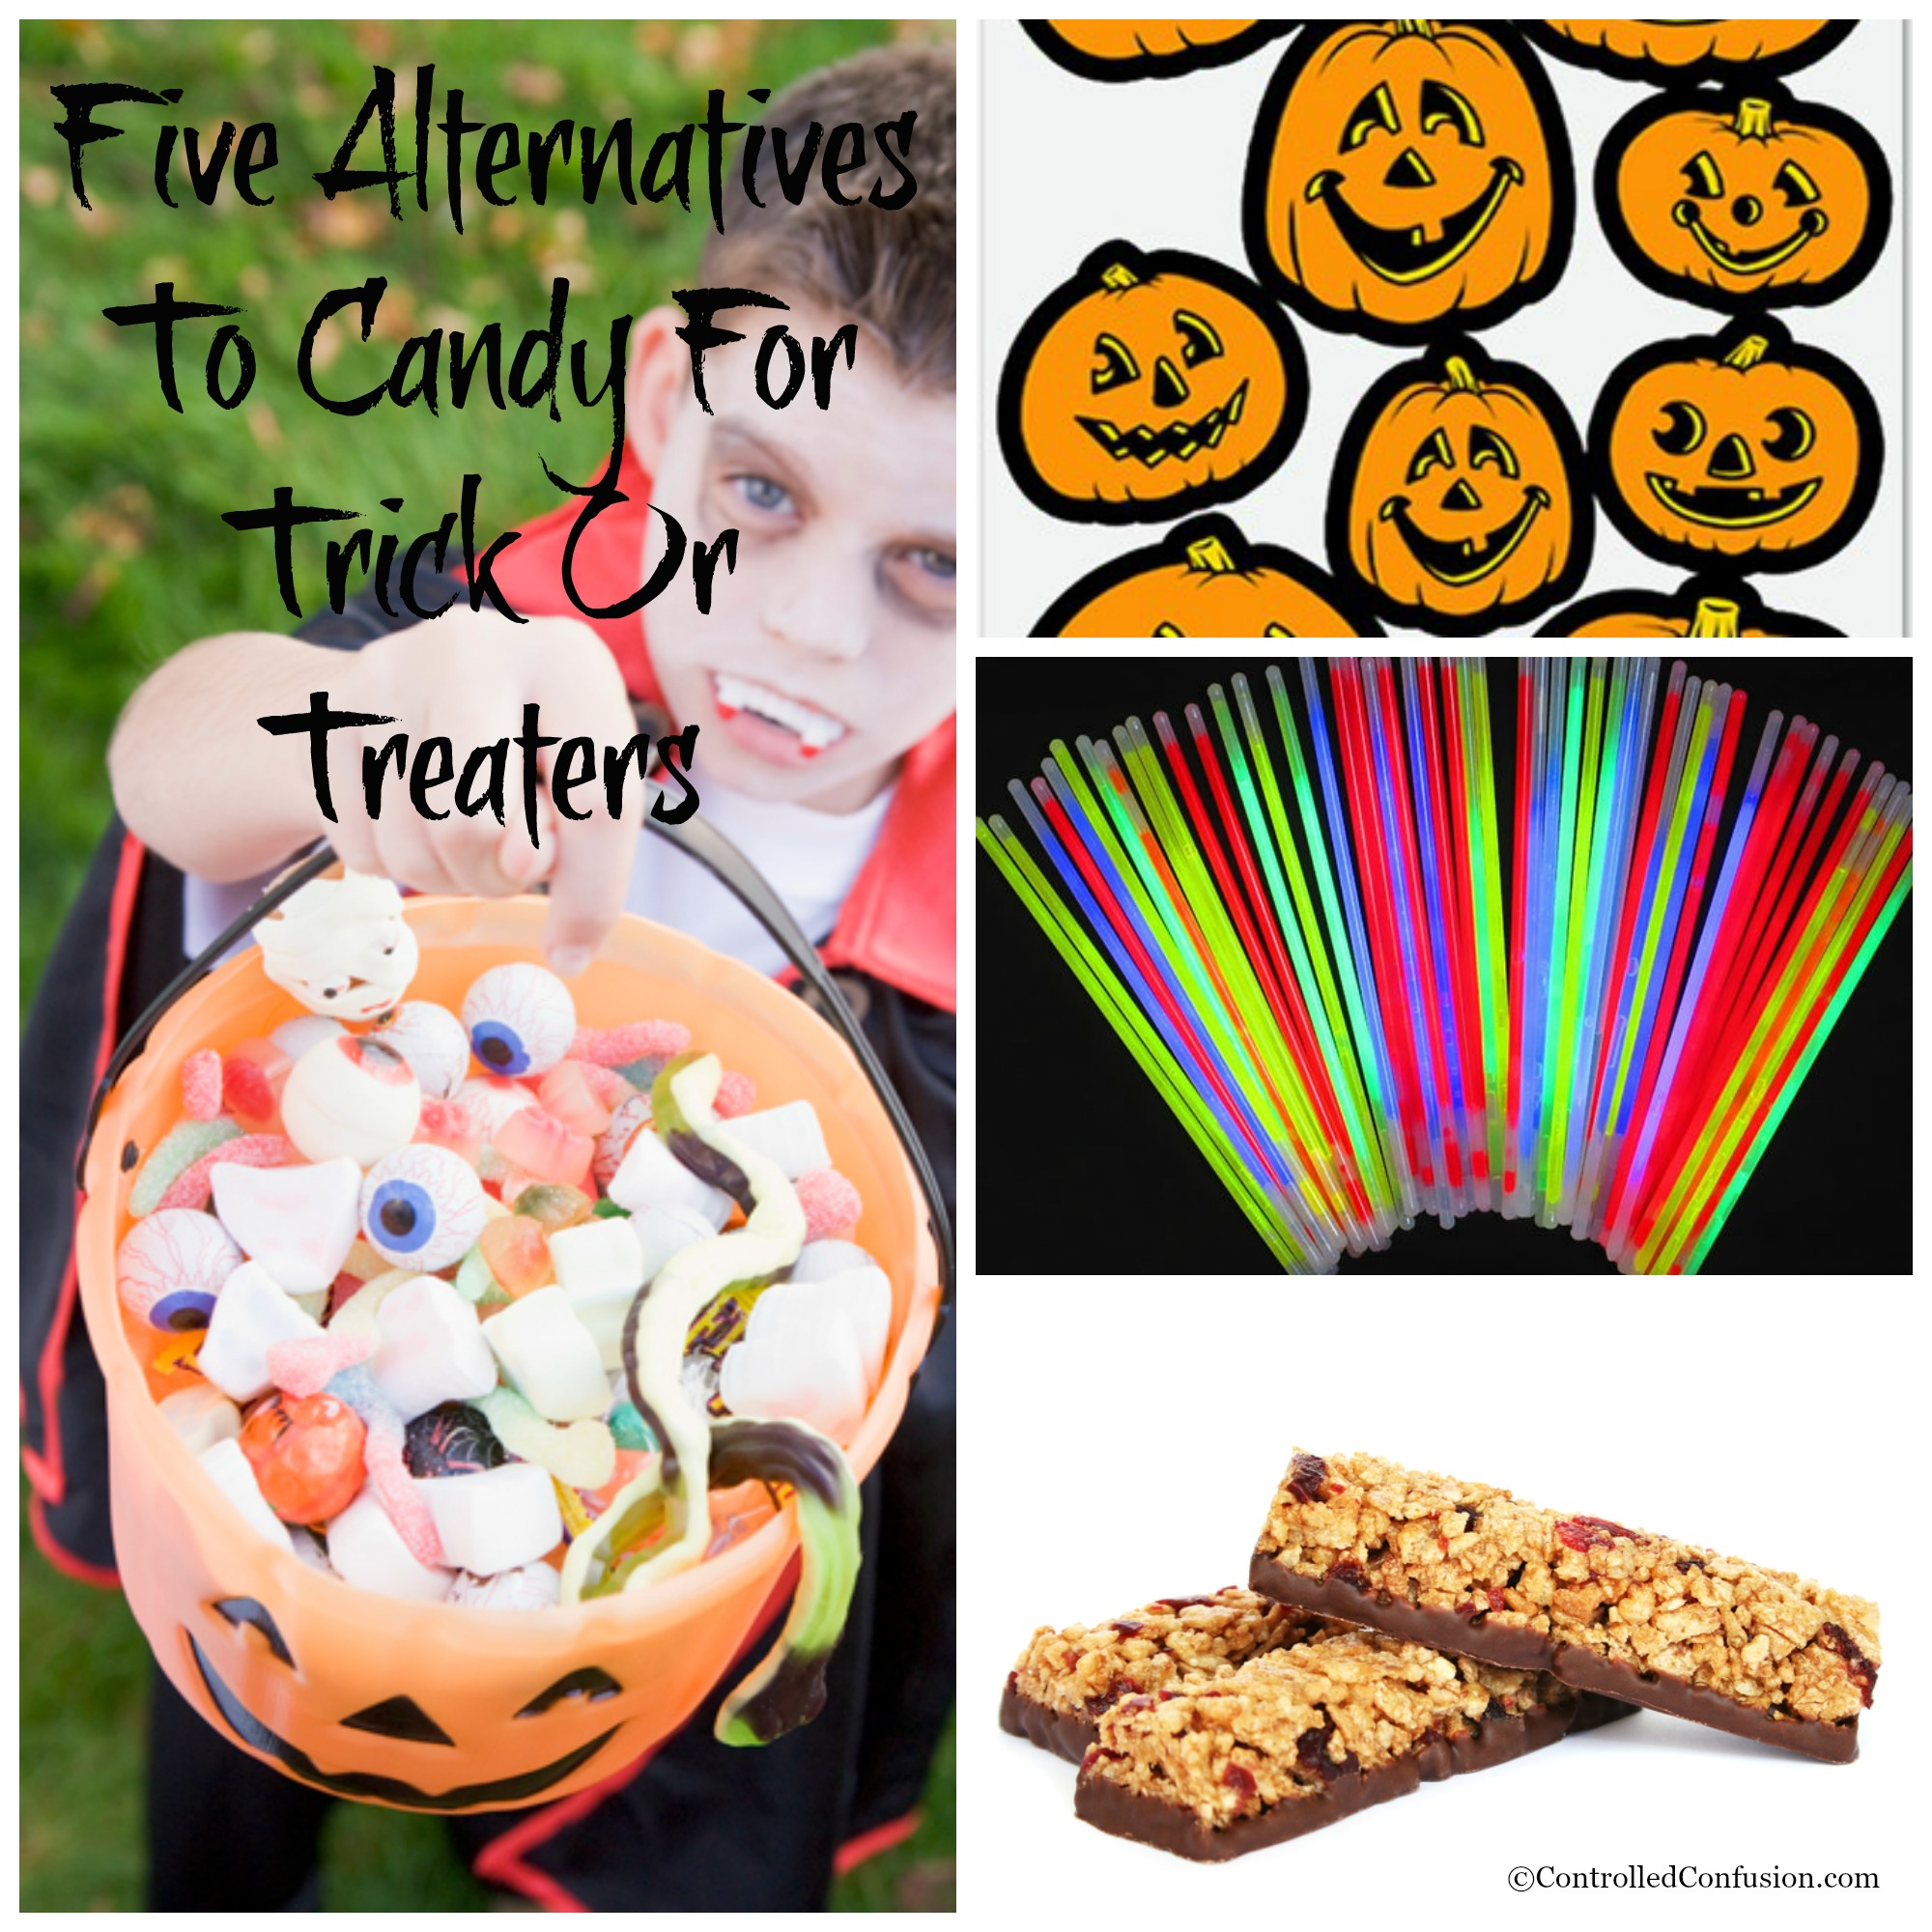 Five Alternatives To Candy For Trick Or Treaters